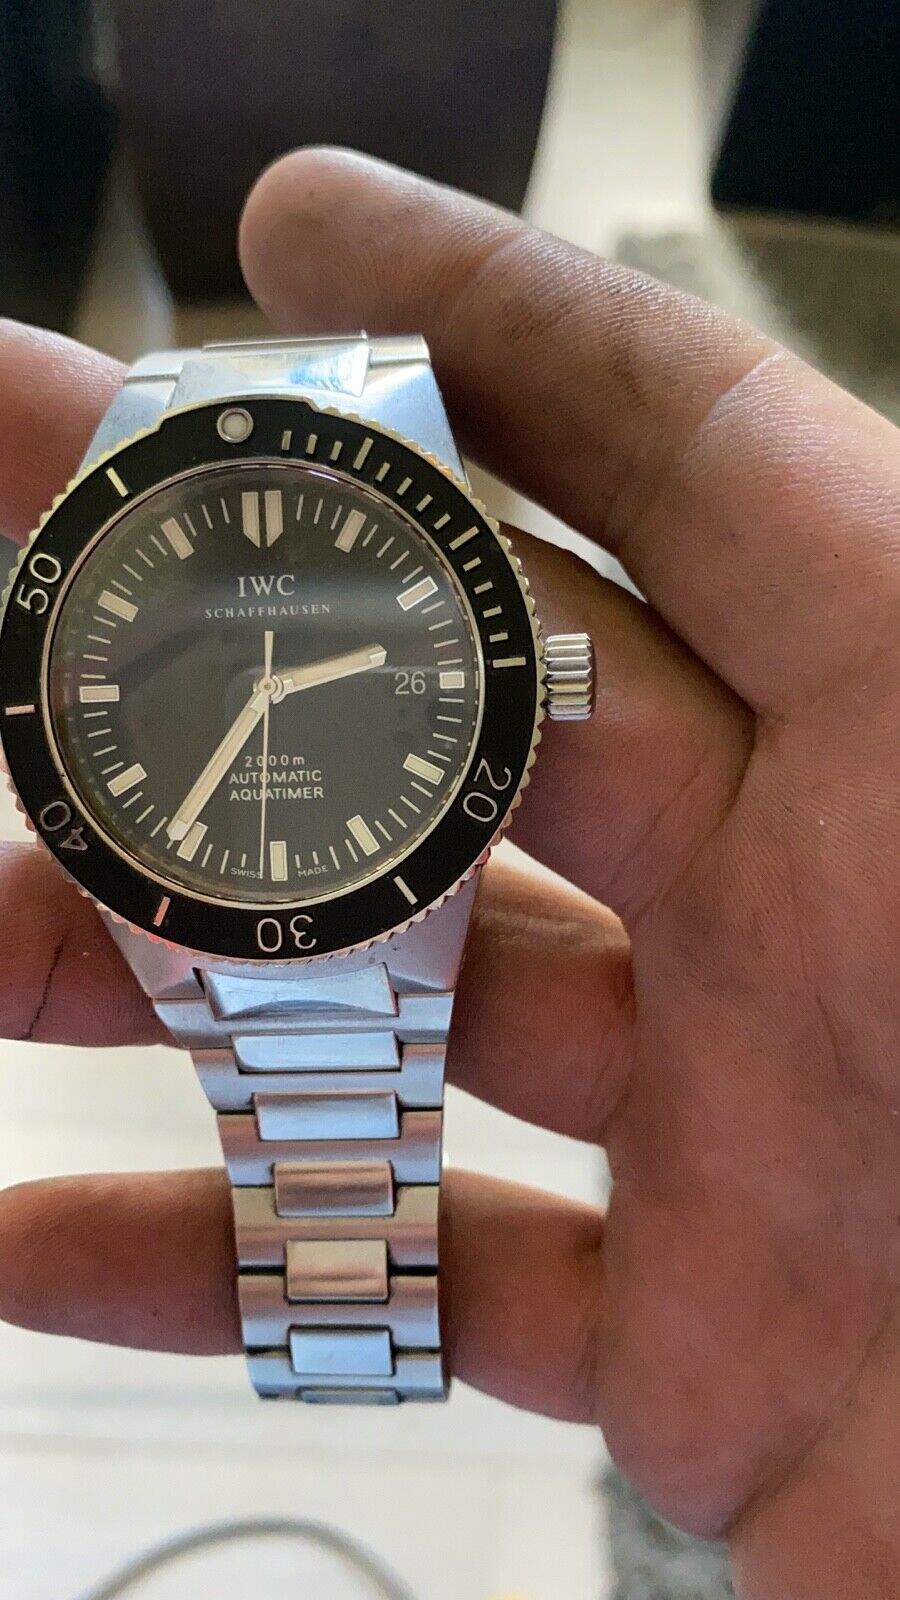 IWC GST Aquatimer 2000 in Stainless Steel - watch picture 1